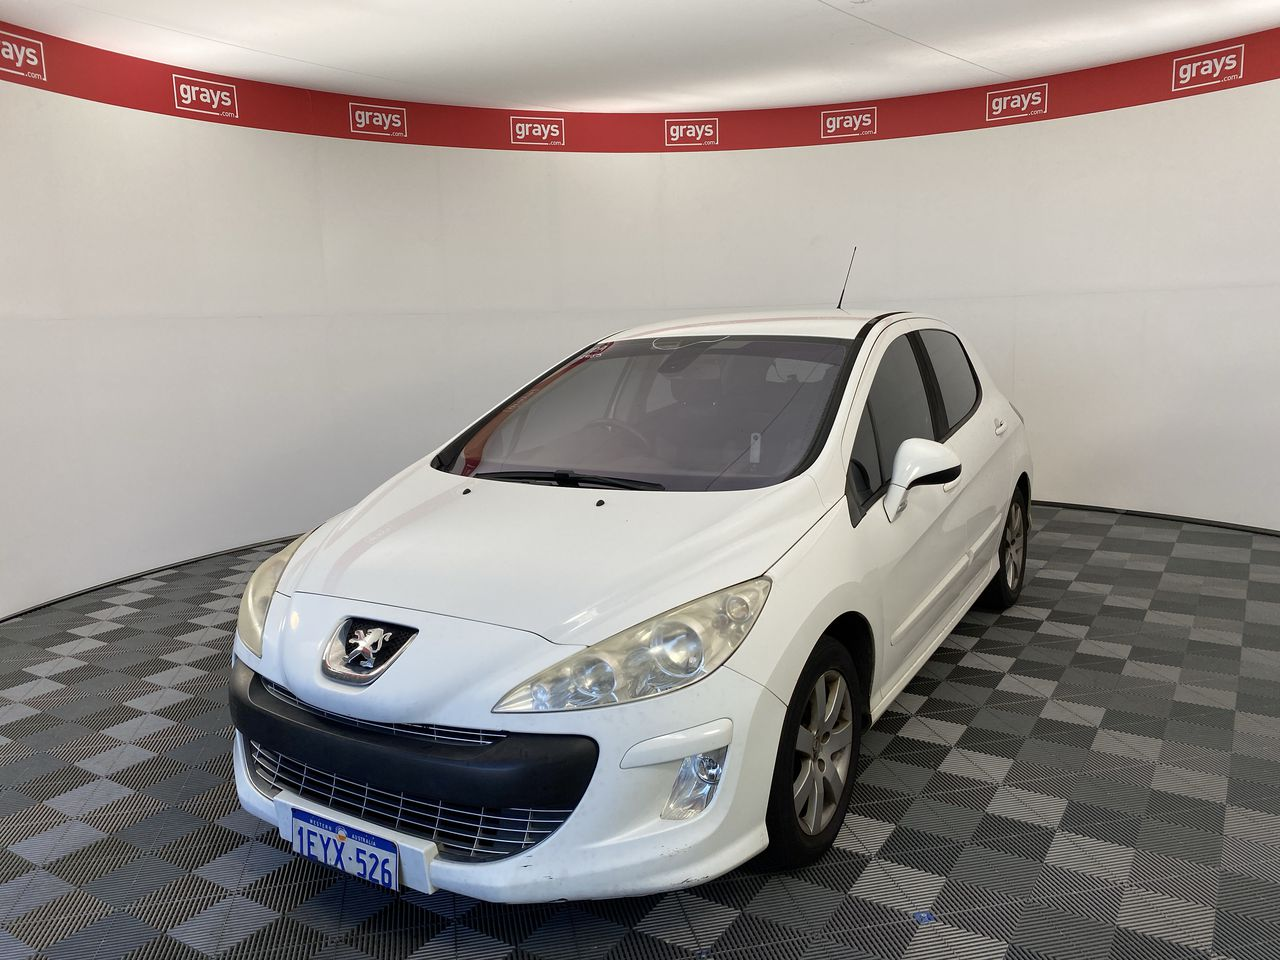 2008 Peugeot 308 XSE HDi Turbo Diesel Automatic Hatchback